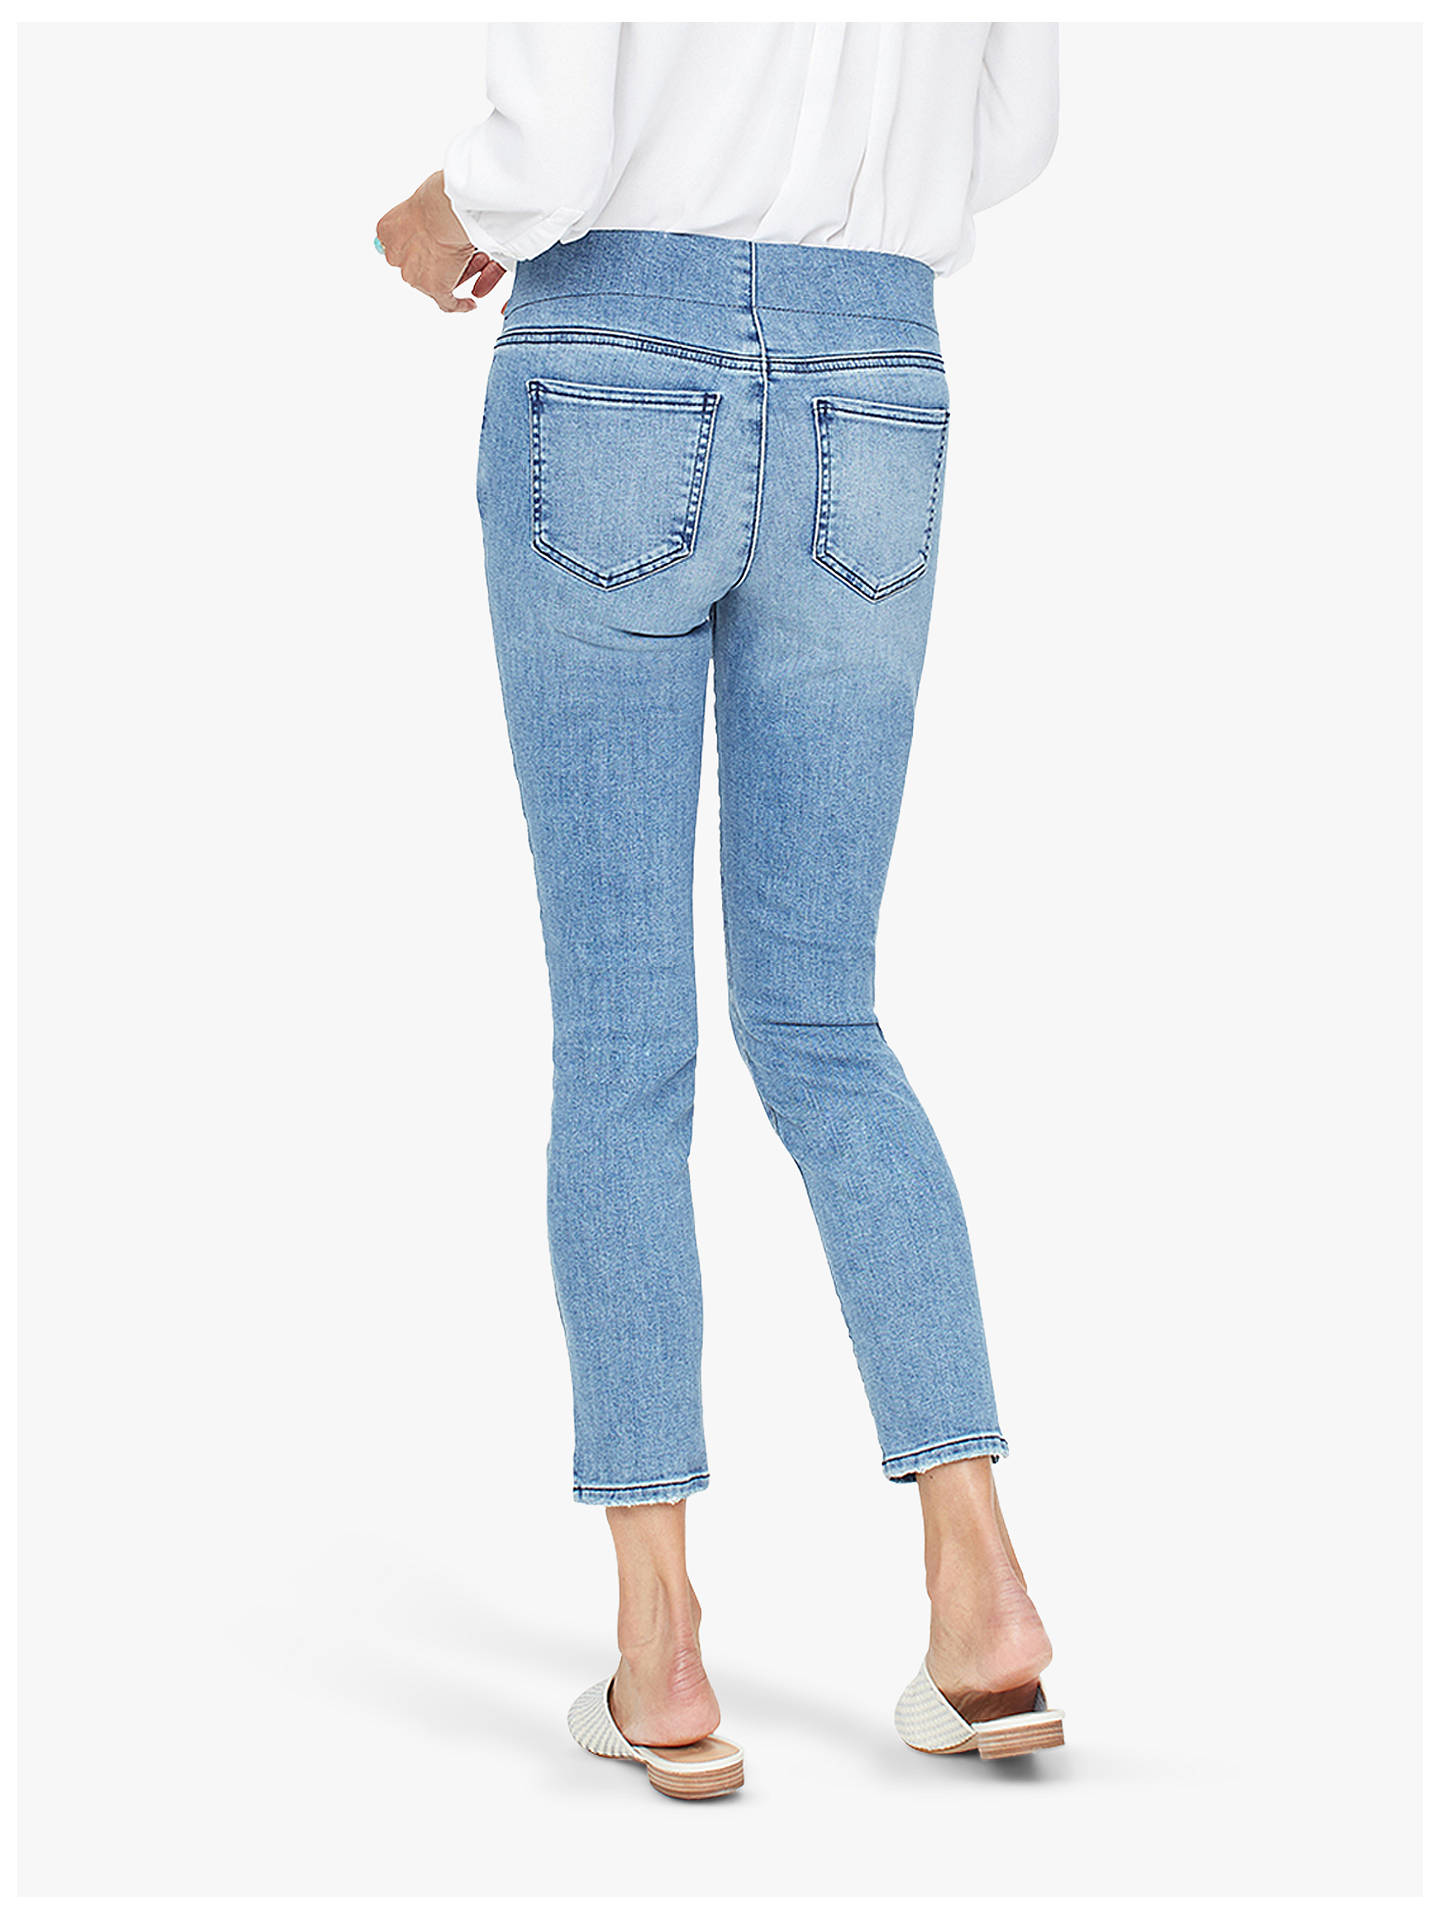 Buy NYDJ Skinny Ankle Pull-On Jeans, Aquino, 14 Online at johnlewis.com